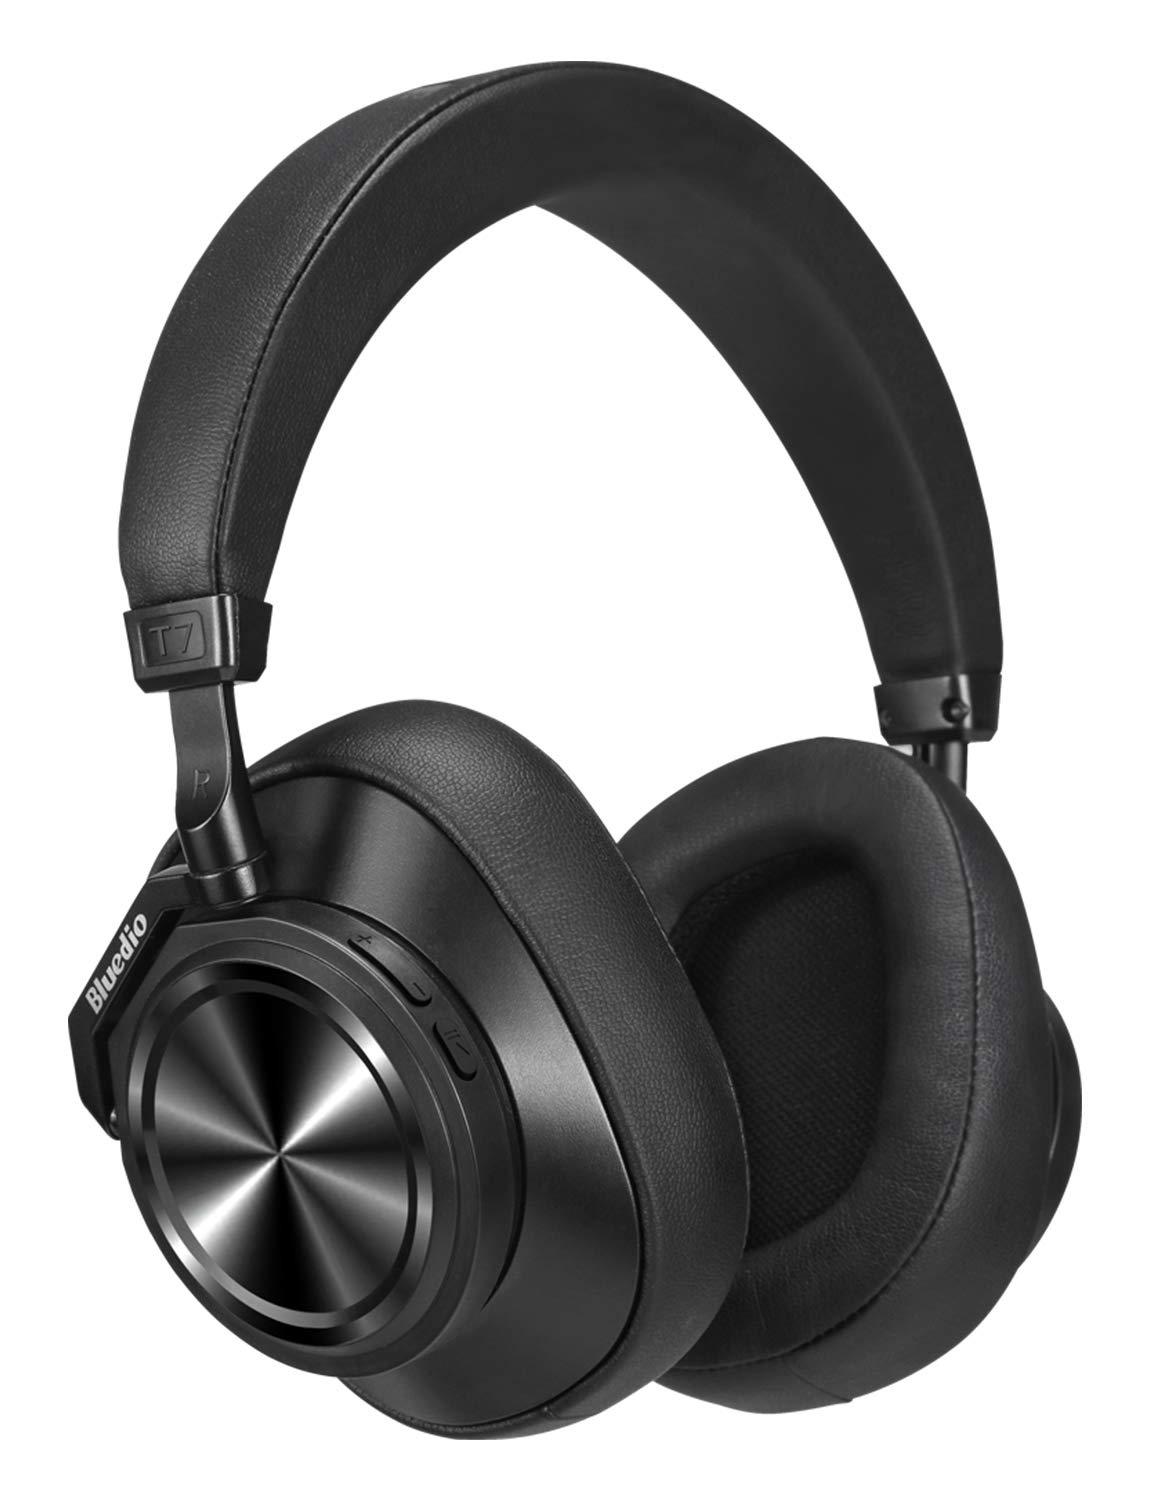 Bluetooth Headphones Over Ear,Bluedio T7 Plus (Turbine) Custom Noise Cancelling Headphones,57mm Driver Hi-Fi Stereo, 30Hrs Playtime,Wireless Headsets with Mic/SD Card Slot for PC/Cellphone/Travel/Work